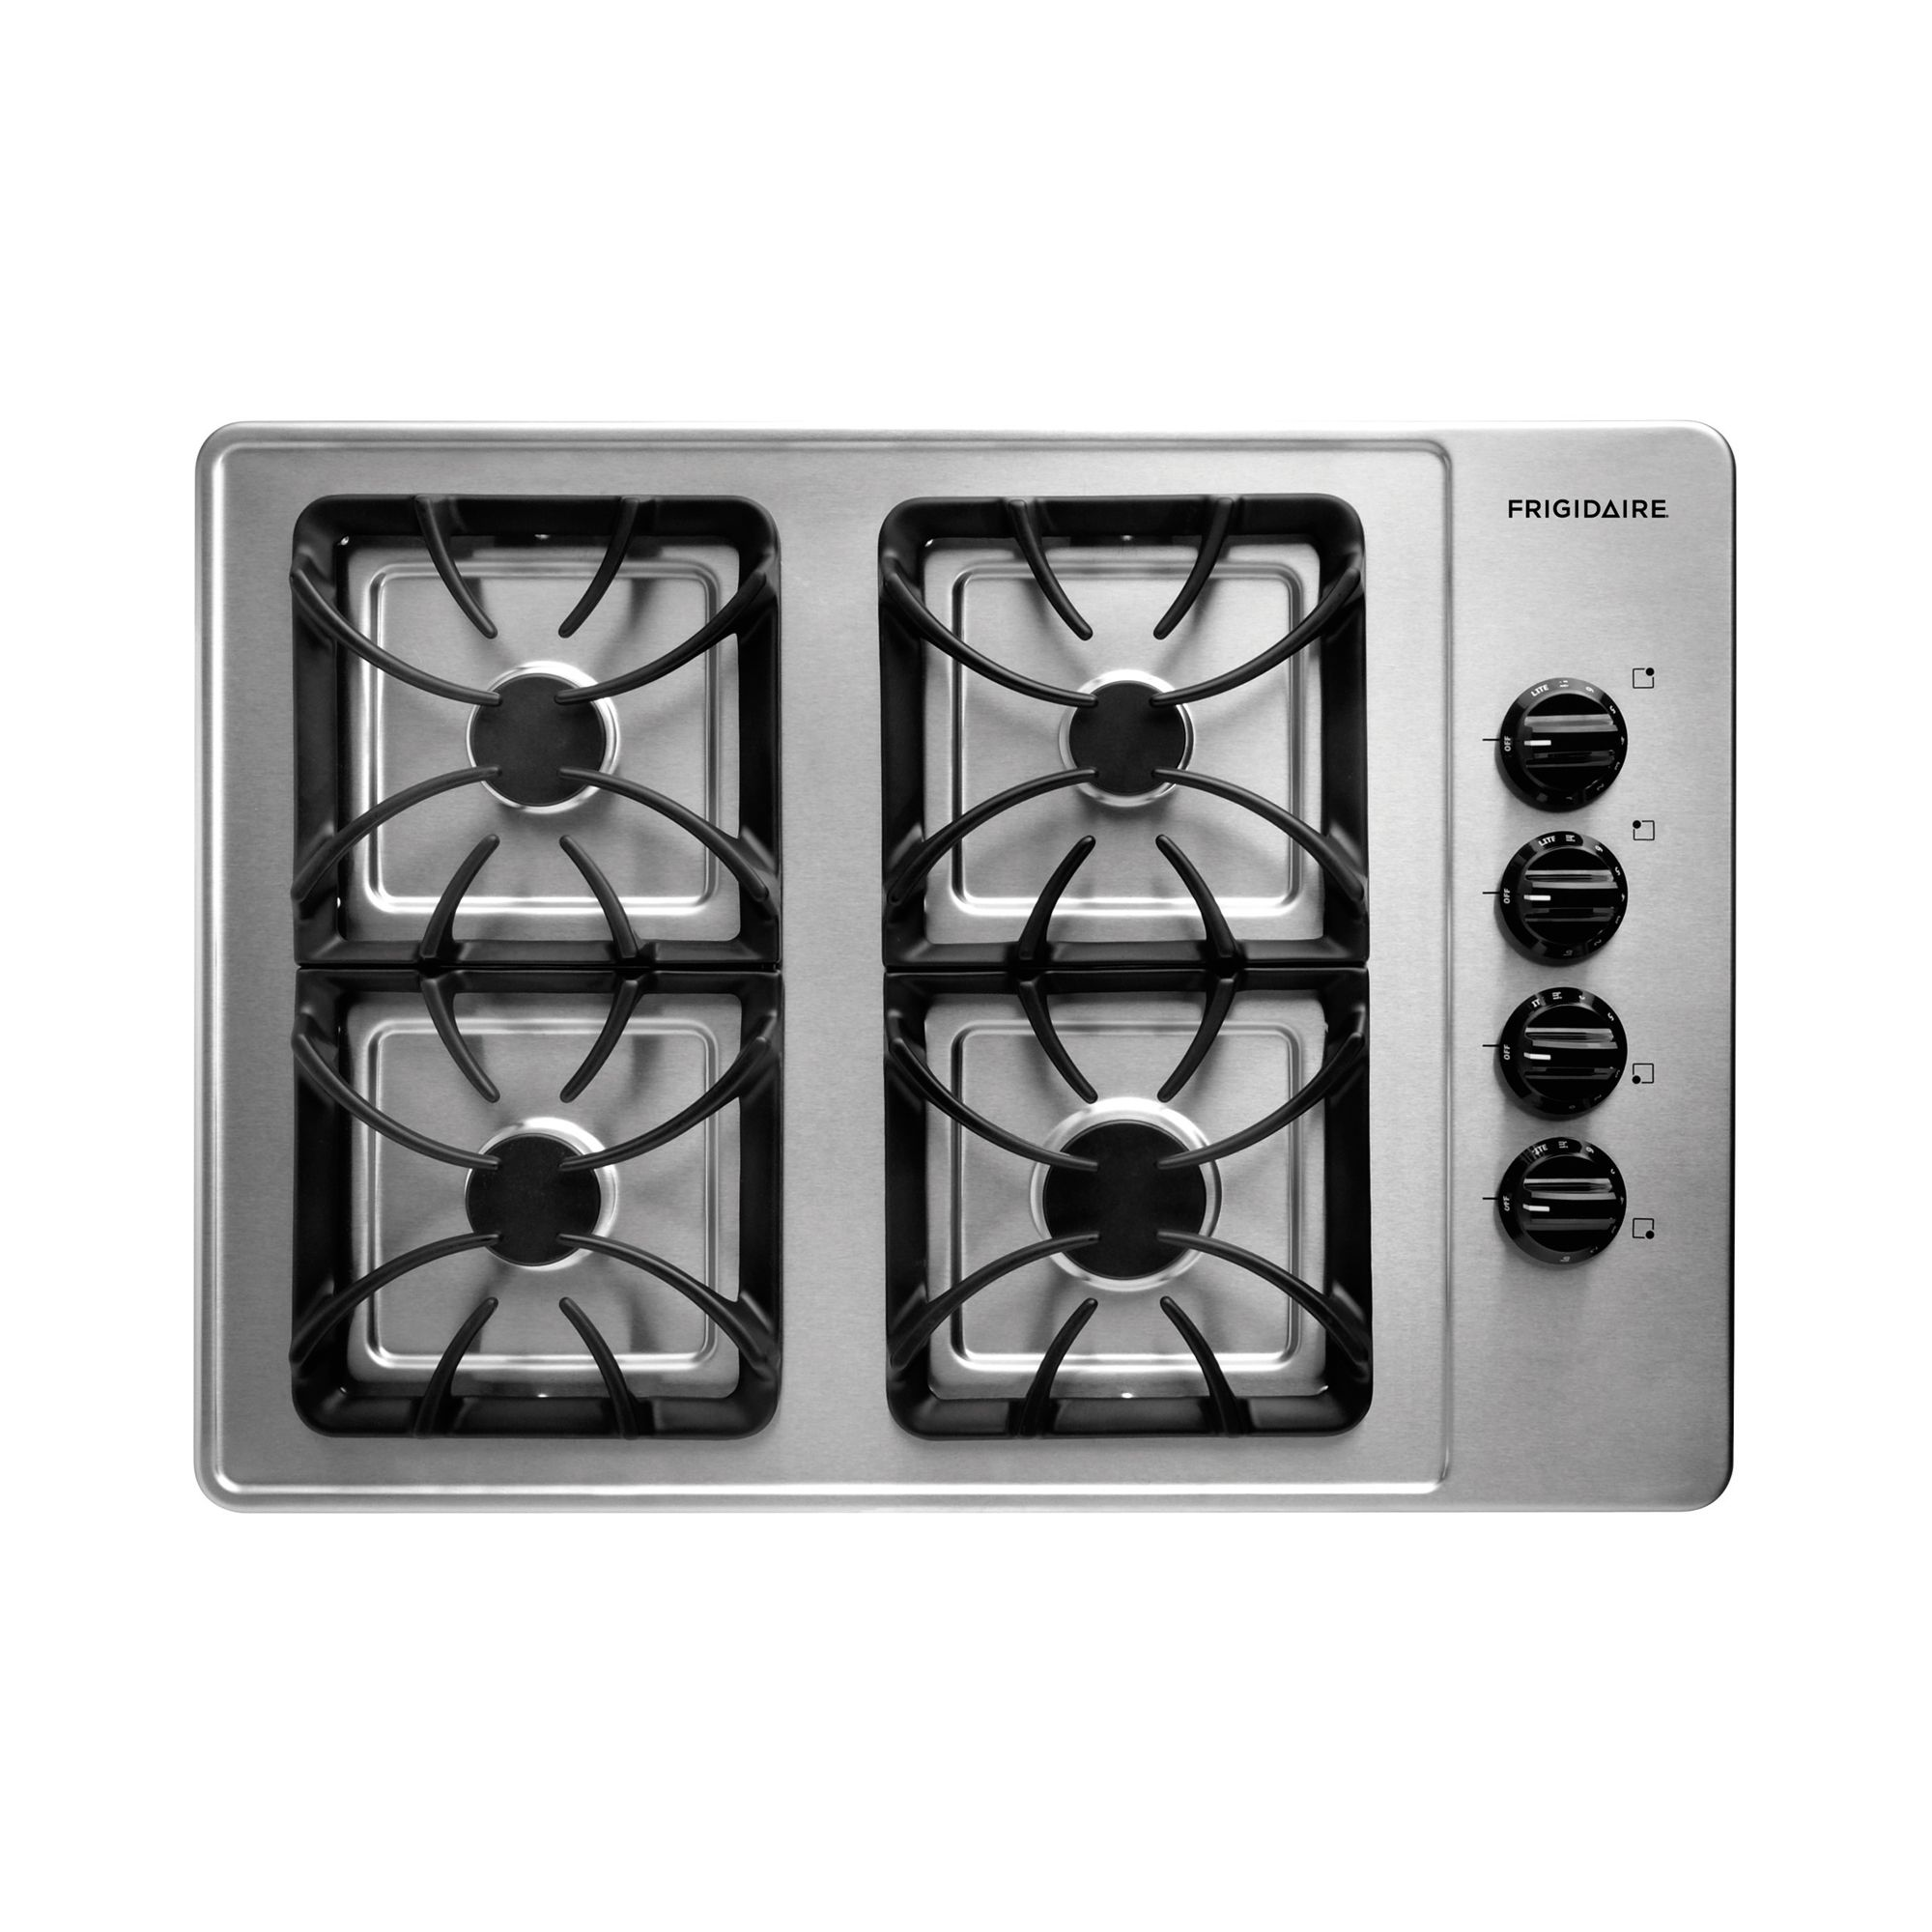 Cooktop Gas Stoves Frigidaire 30in Sealed Burner Gas Cooktop Range Stove